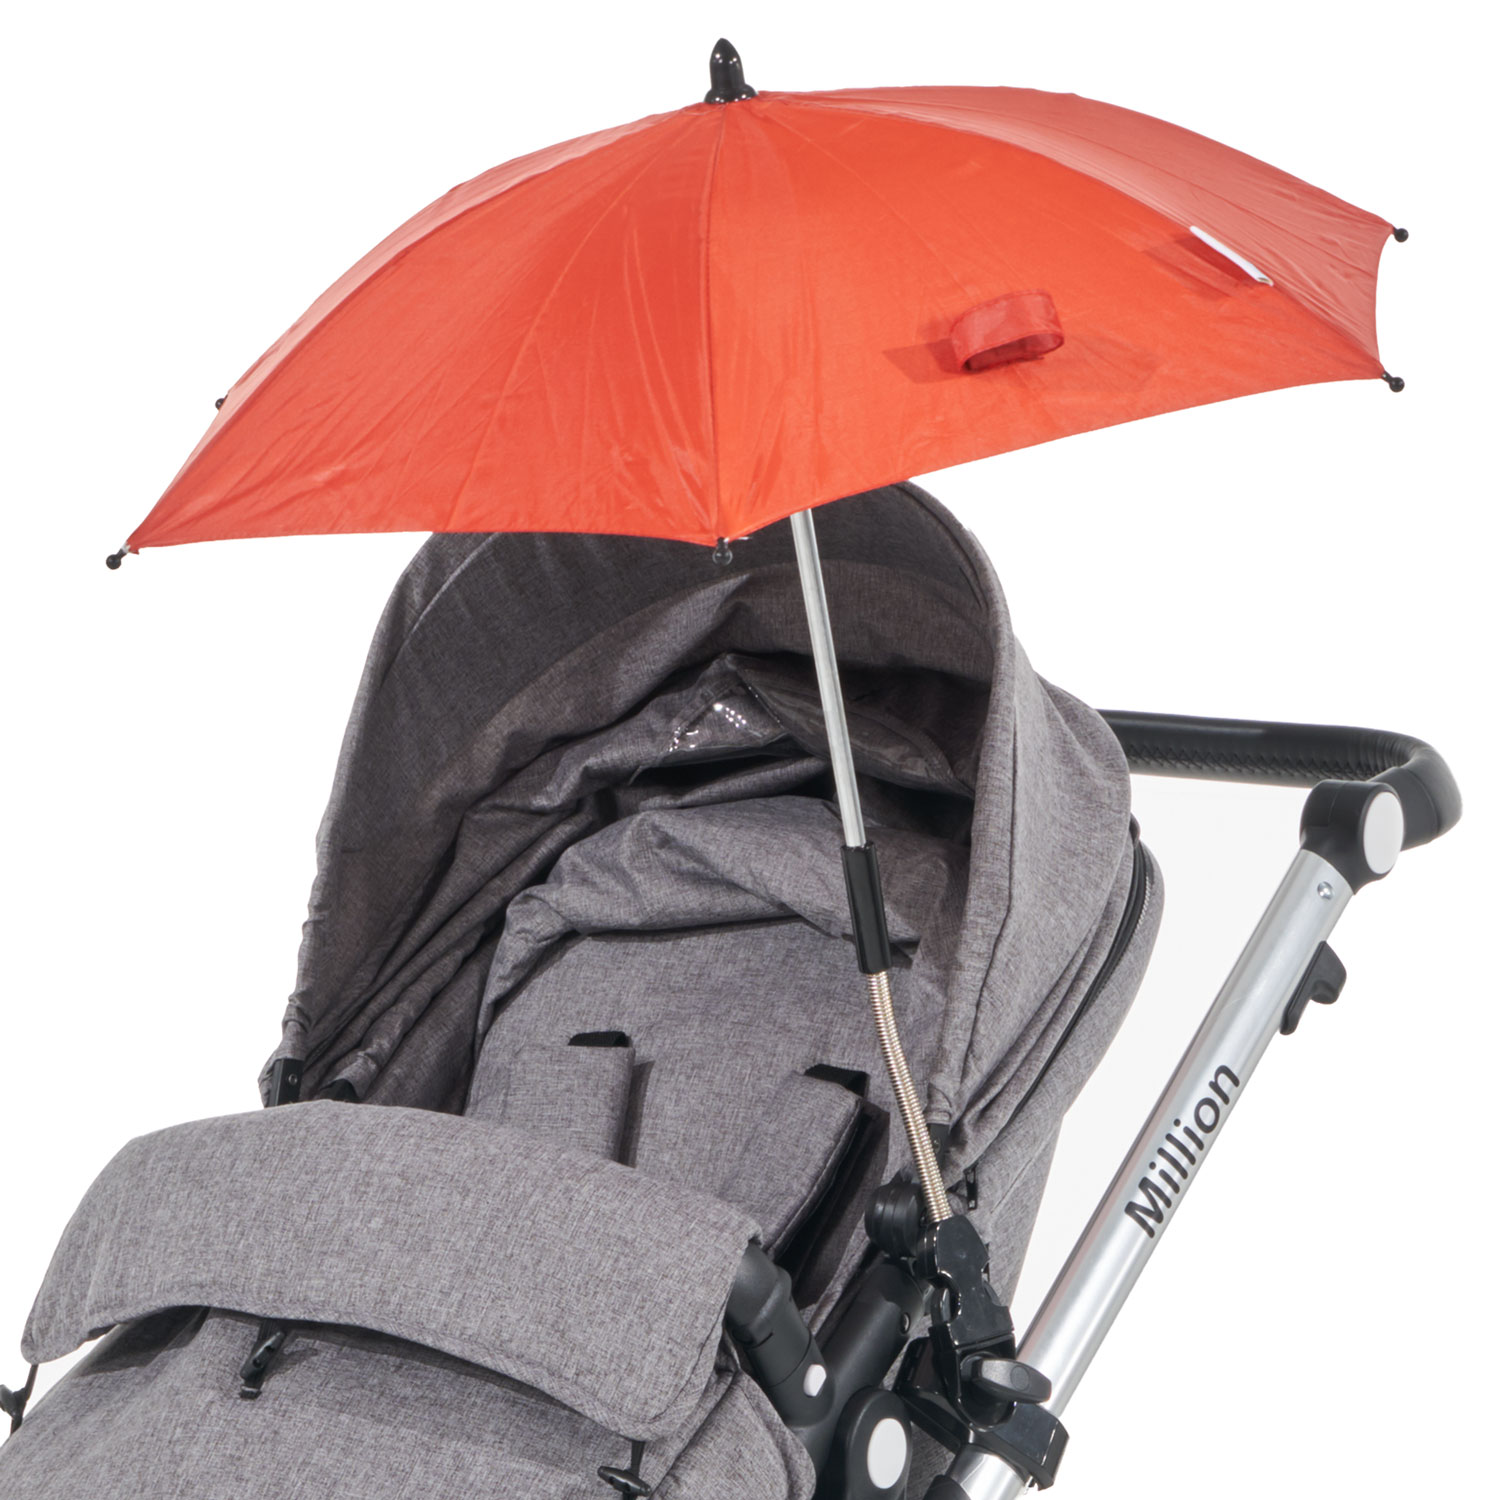 For-Your-Little-One Parasol Compatible with Mamas /& Papas Cruise Red